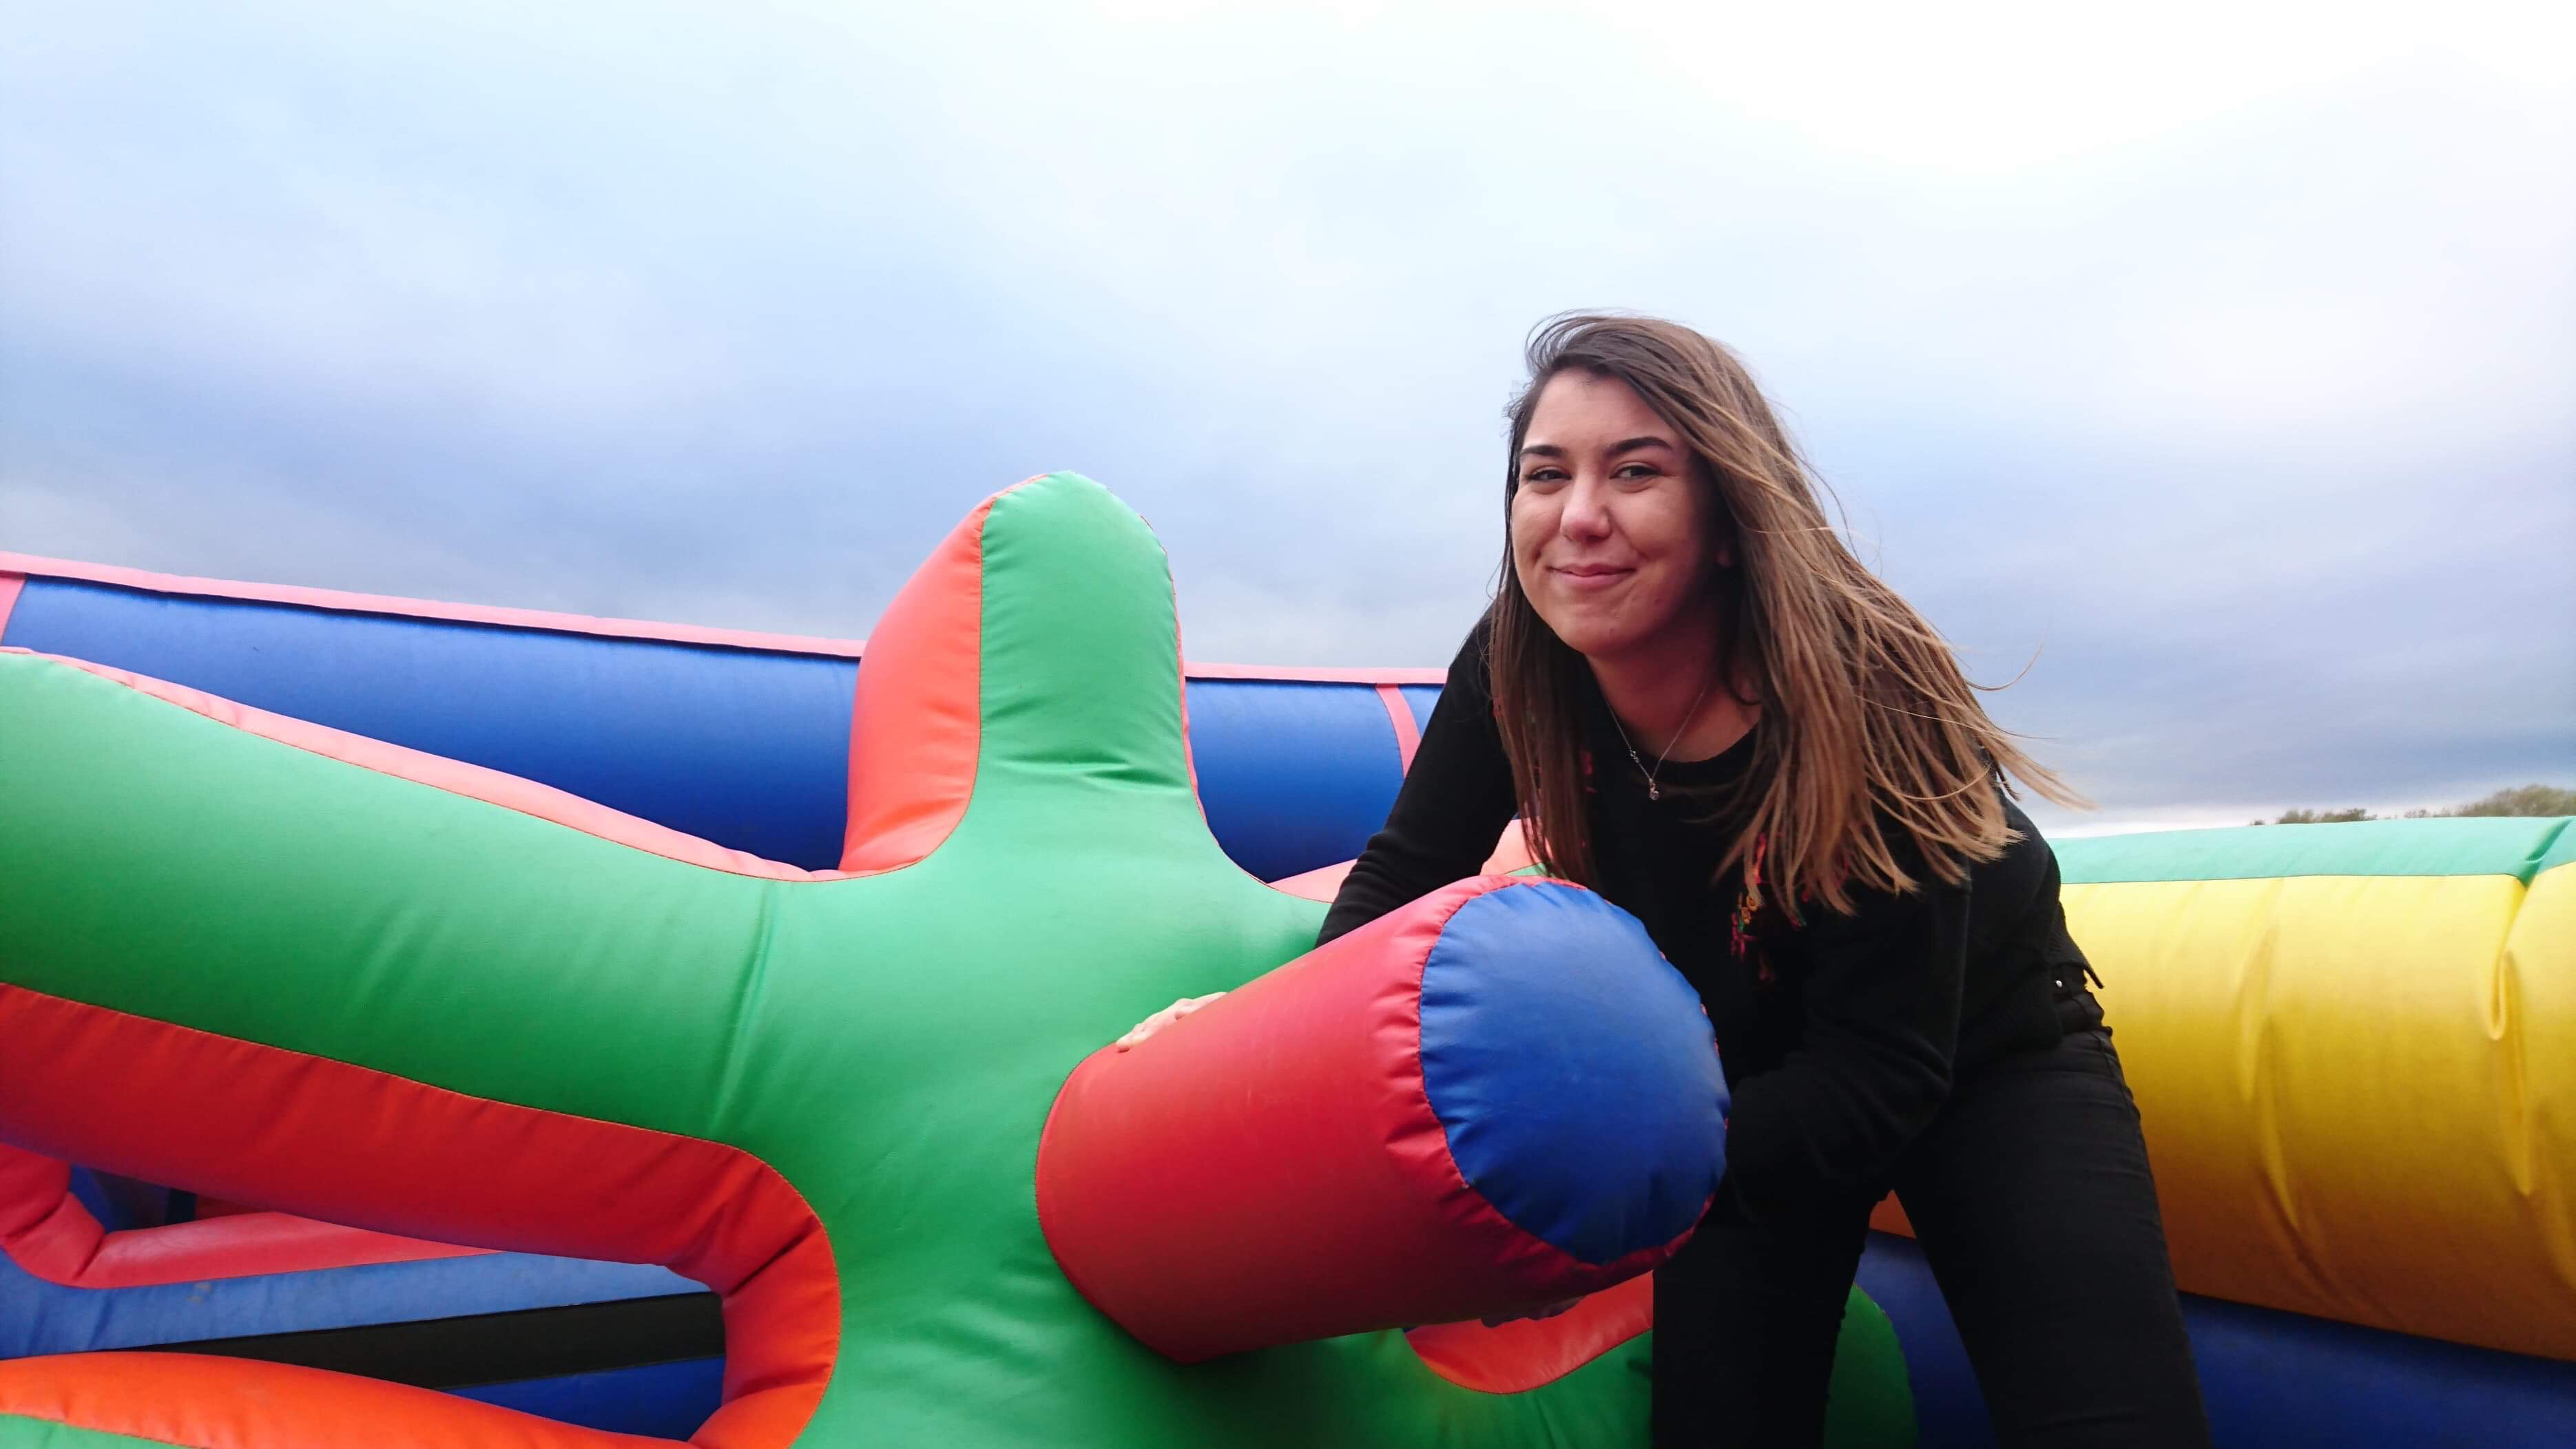 me on inflatable course